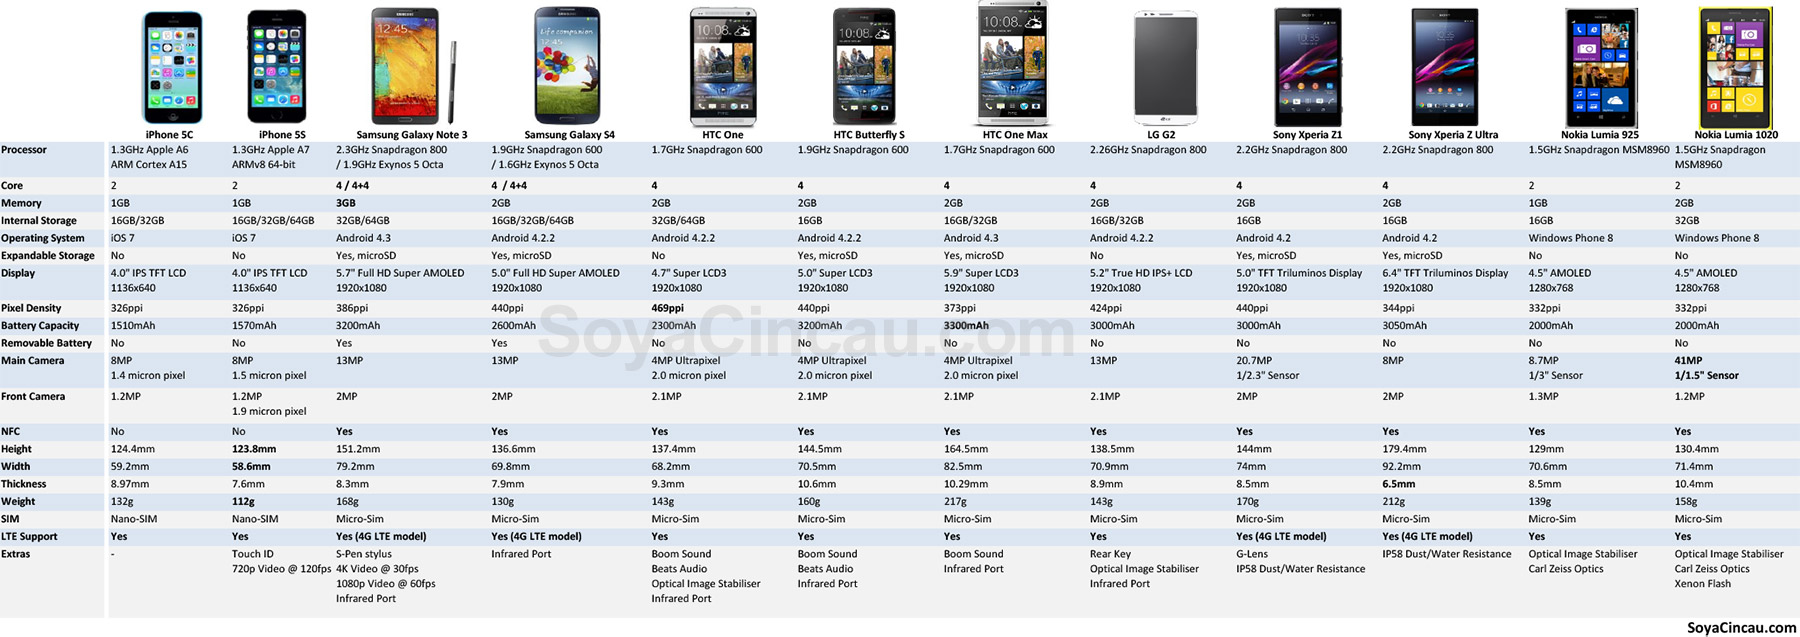 HTC One Max specification compared with other flagship smart phones